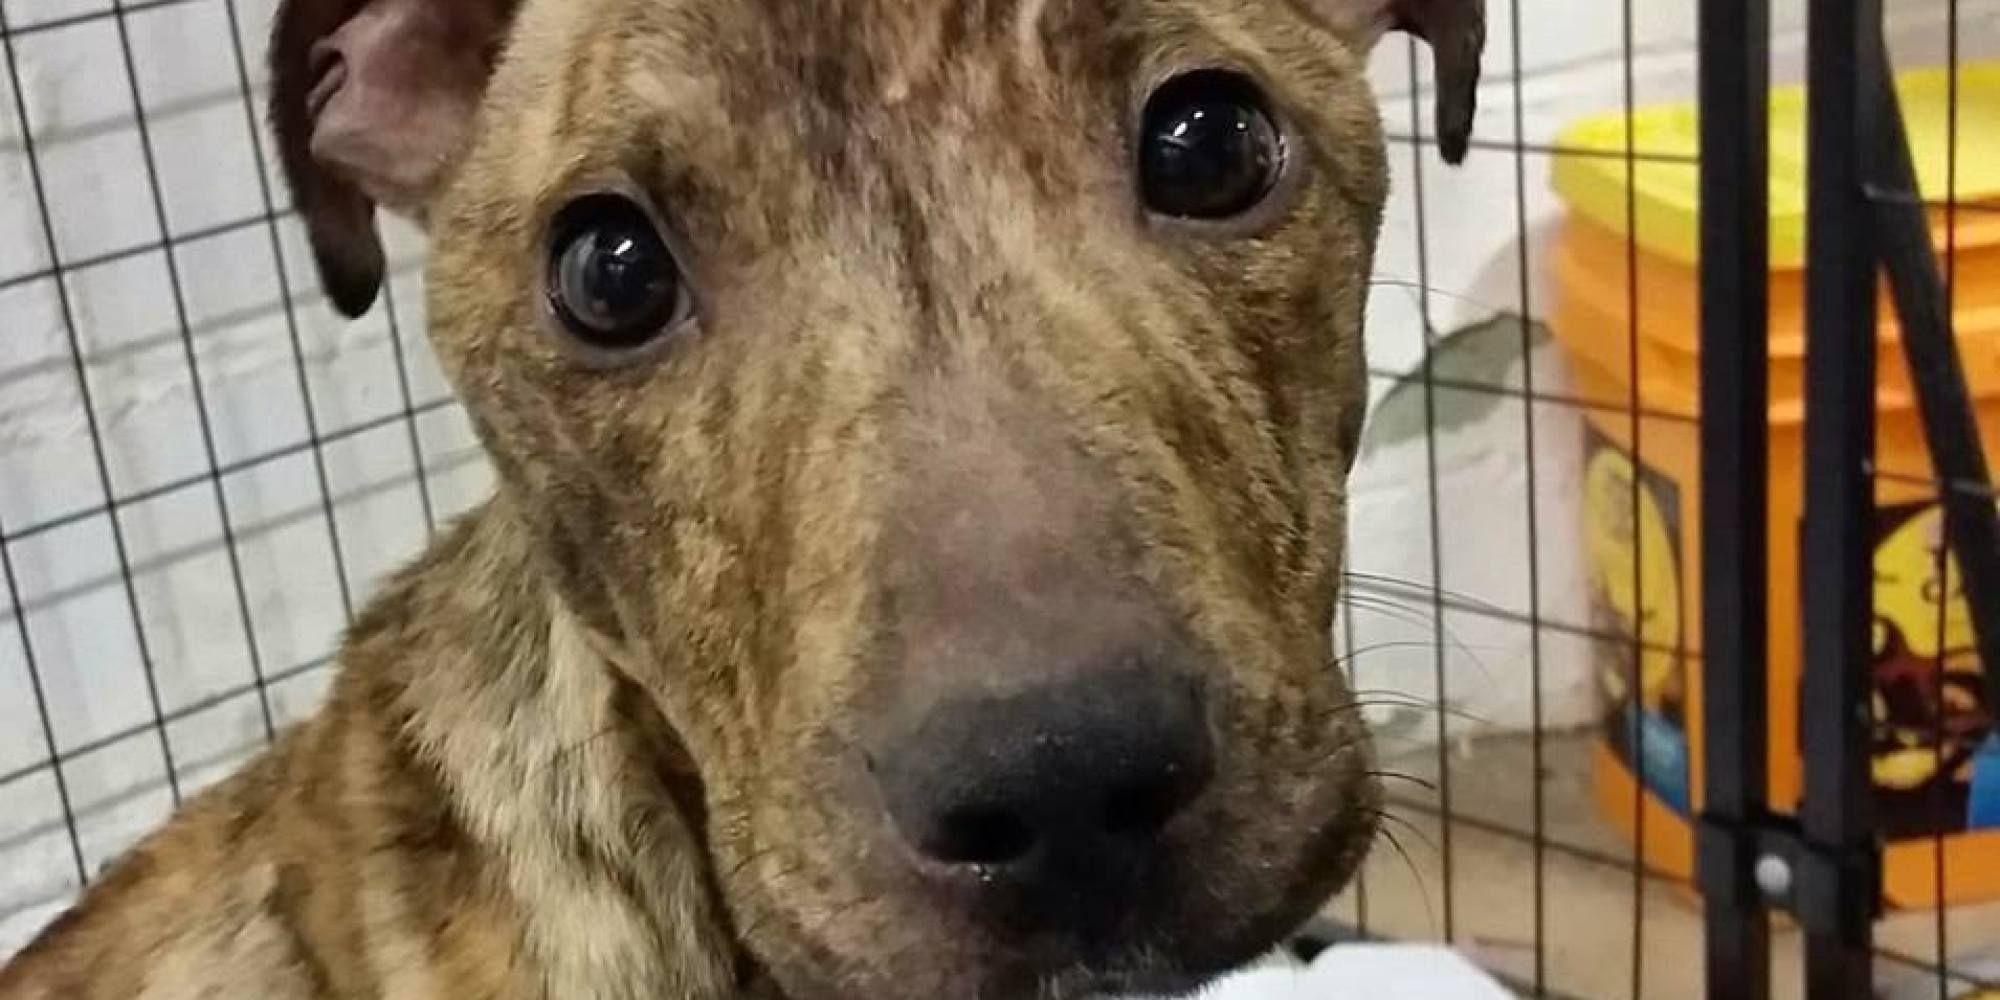 An emaciated pit bull puppy, caged and left for dead in a damp Pennsylvania basement, is alive against all odds after a non-profit animal welfare organization came to his rescue. - http://www.huffingtonpost.com/2015/04/22/anna-shelter-puppy_n_7120584.html